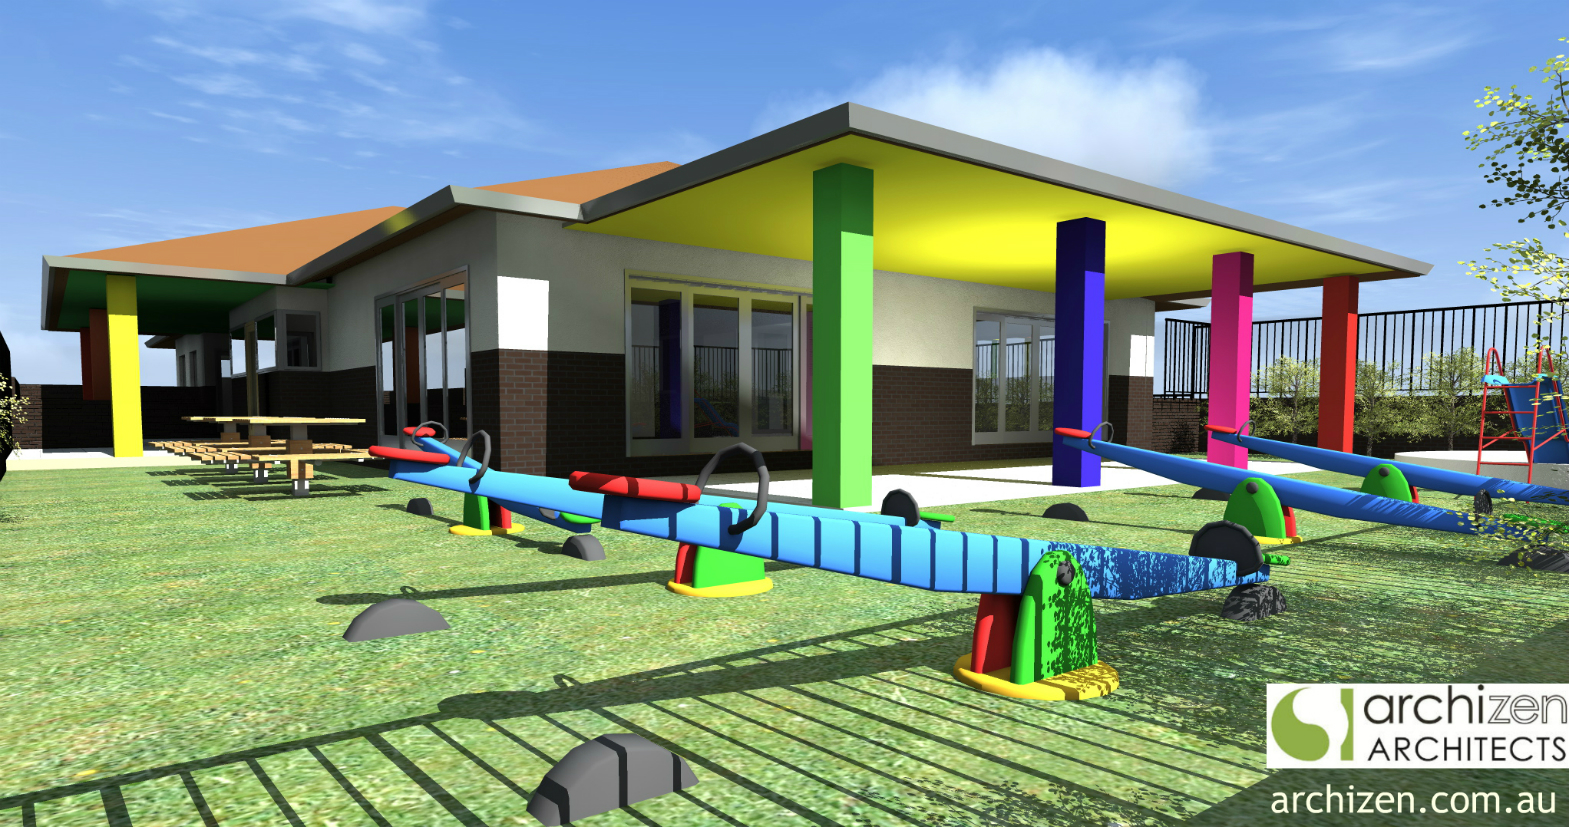 Archizen Architects Architect Designed Childcare Centres Long Day Care Centre Architects